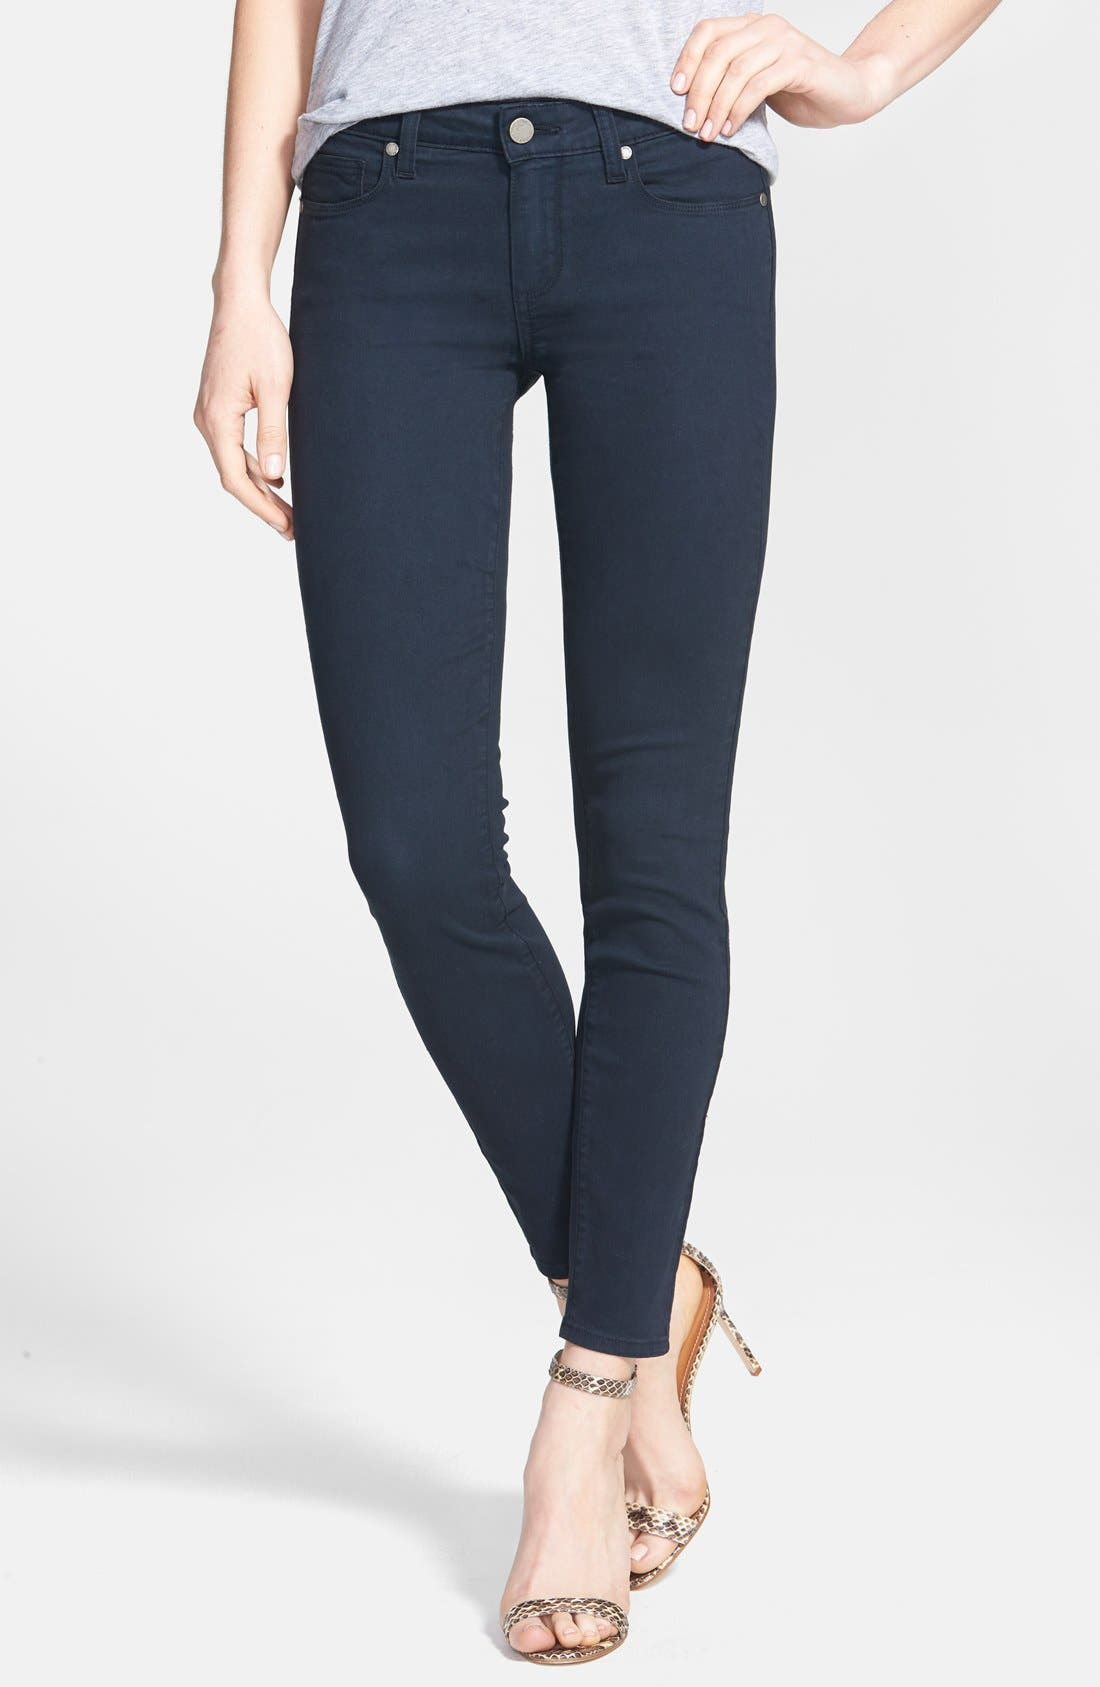 Alternate Image 1 Selected - Paige Denim 'Verdugo' Skinny Ankle Jeans (Azure)